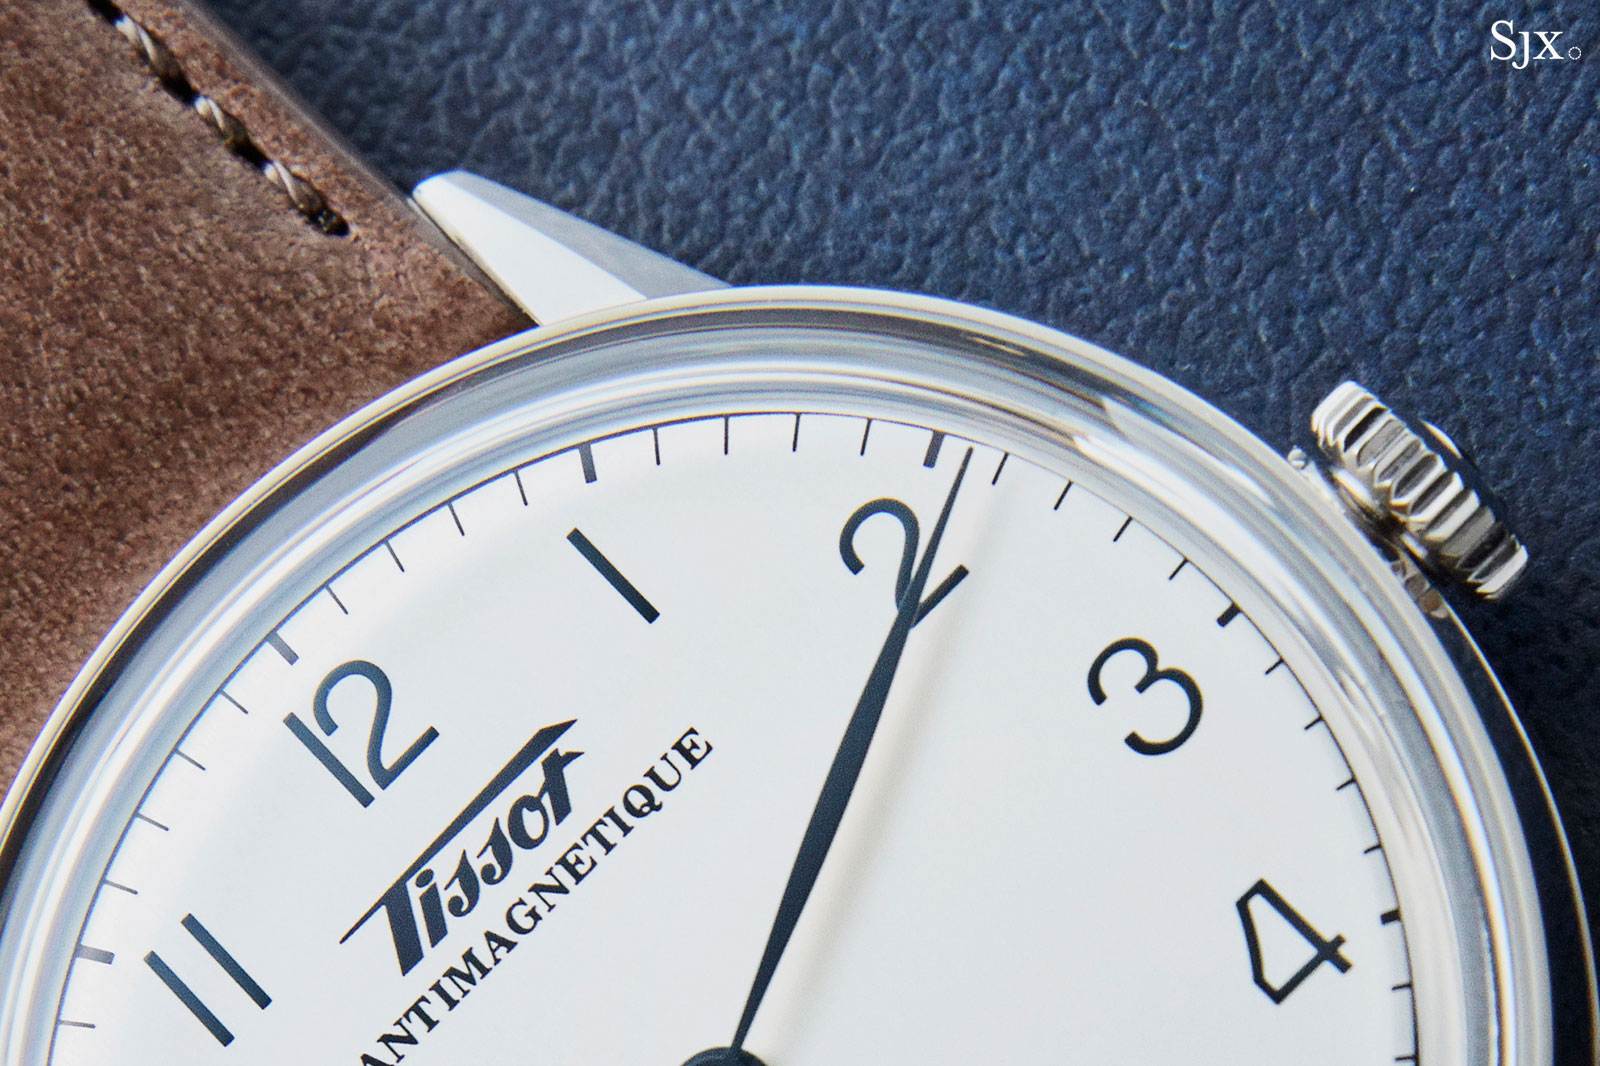 Tissot Heritage Petite Second watch 2